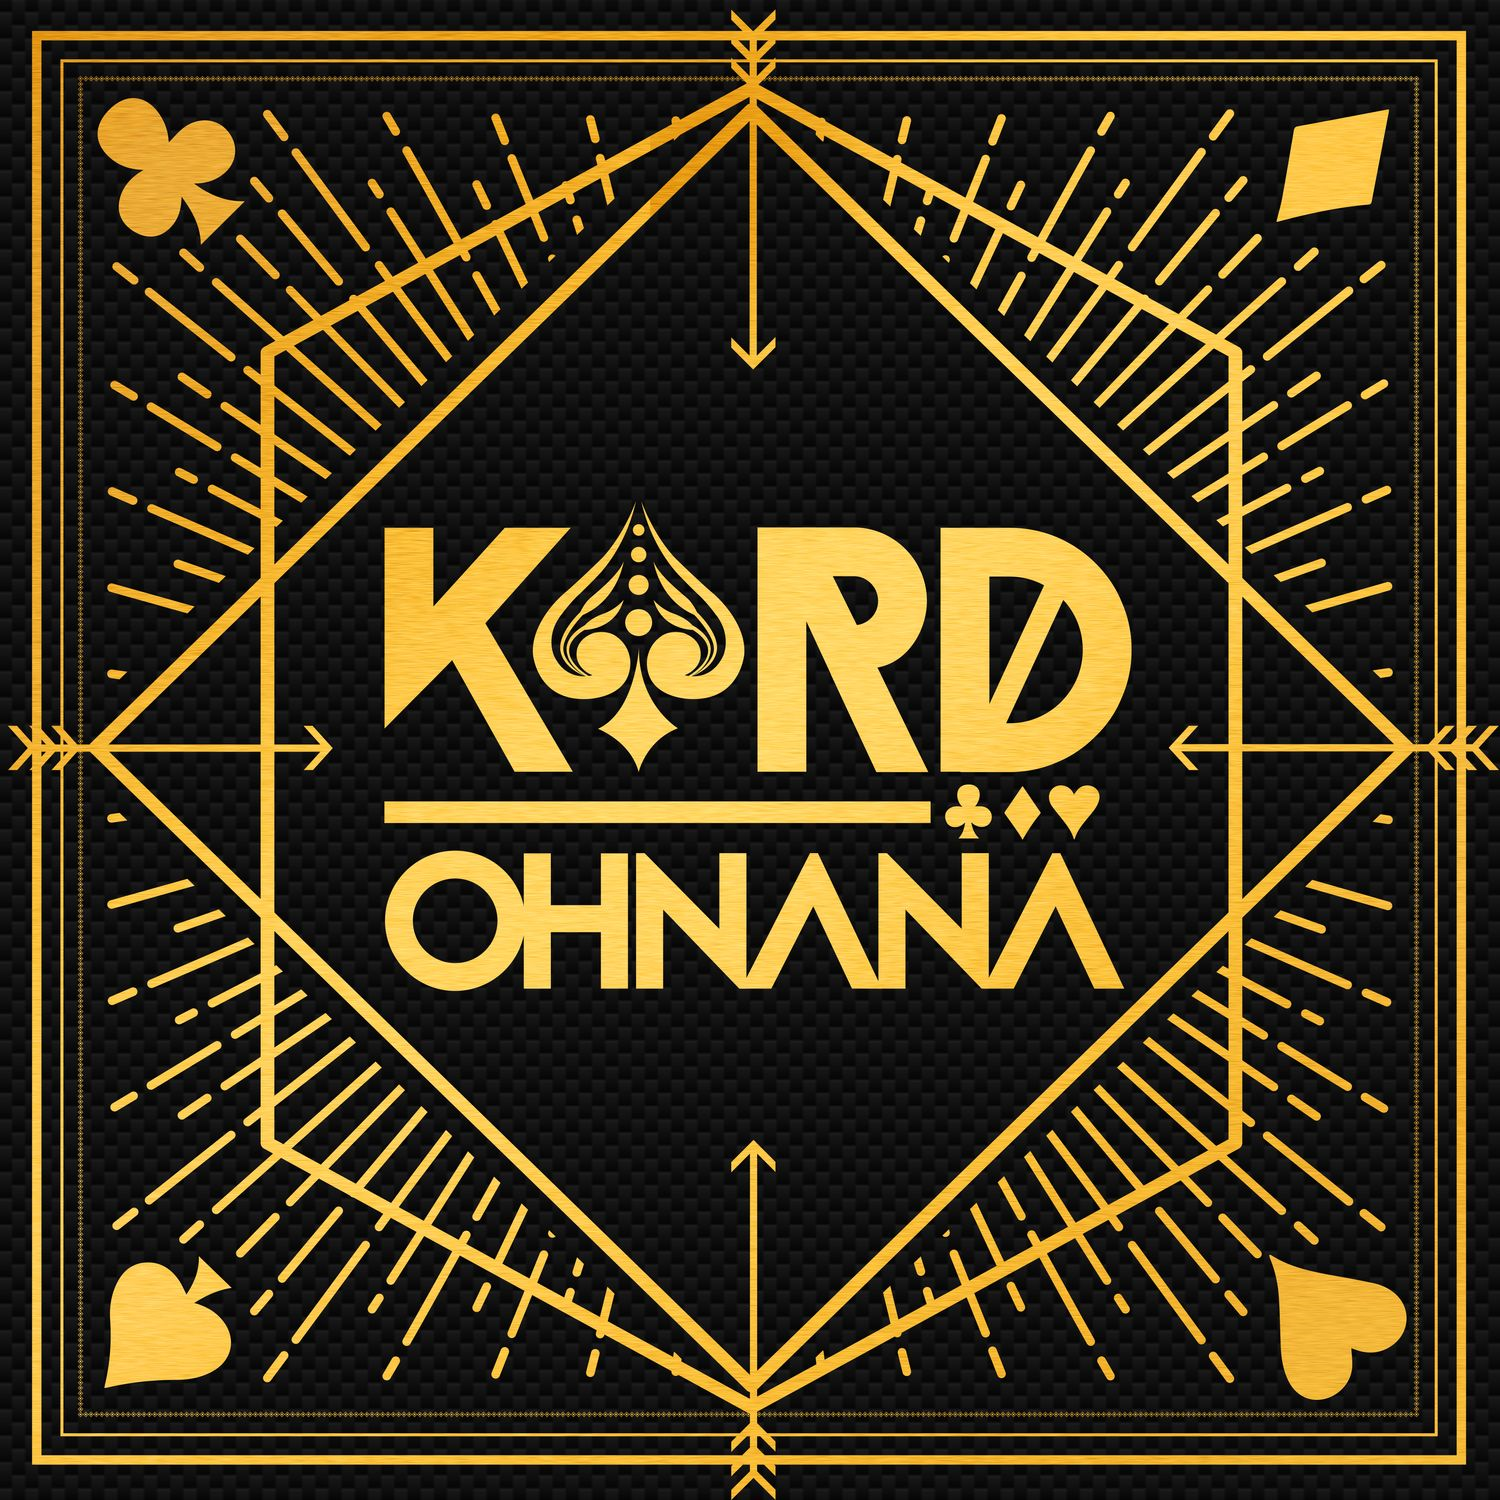 http://vignette1.wikia.nocookie.net/kpop/images/d/db/K.A.R.D_Oh_NaNa_Cover_Art.png/revision/latest?cb=20161212191012